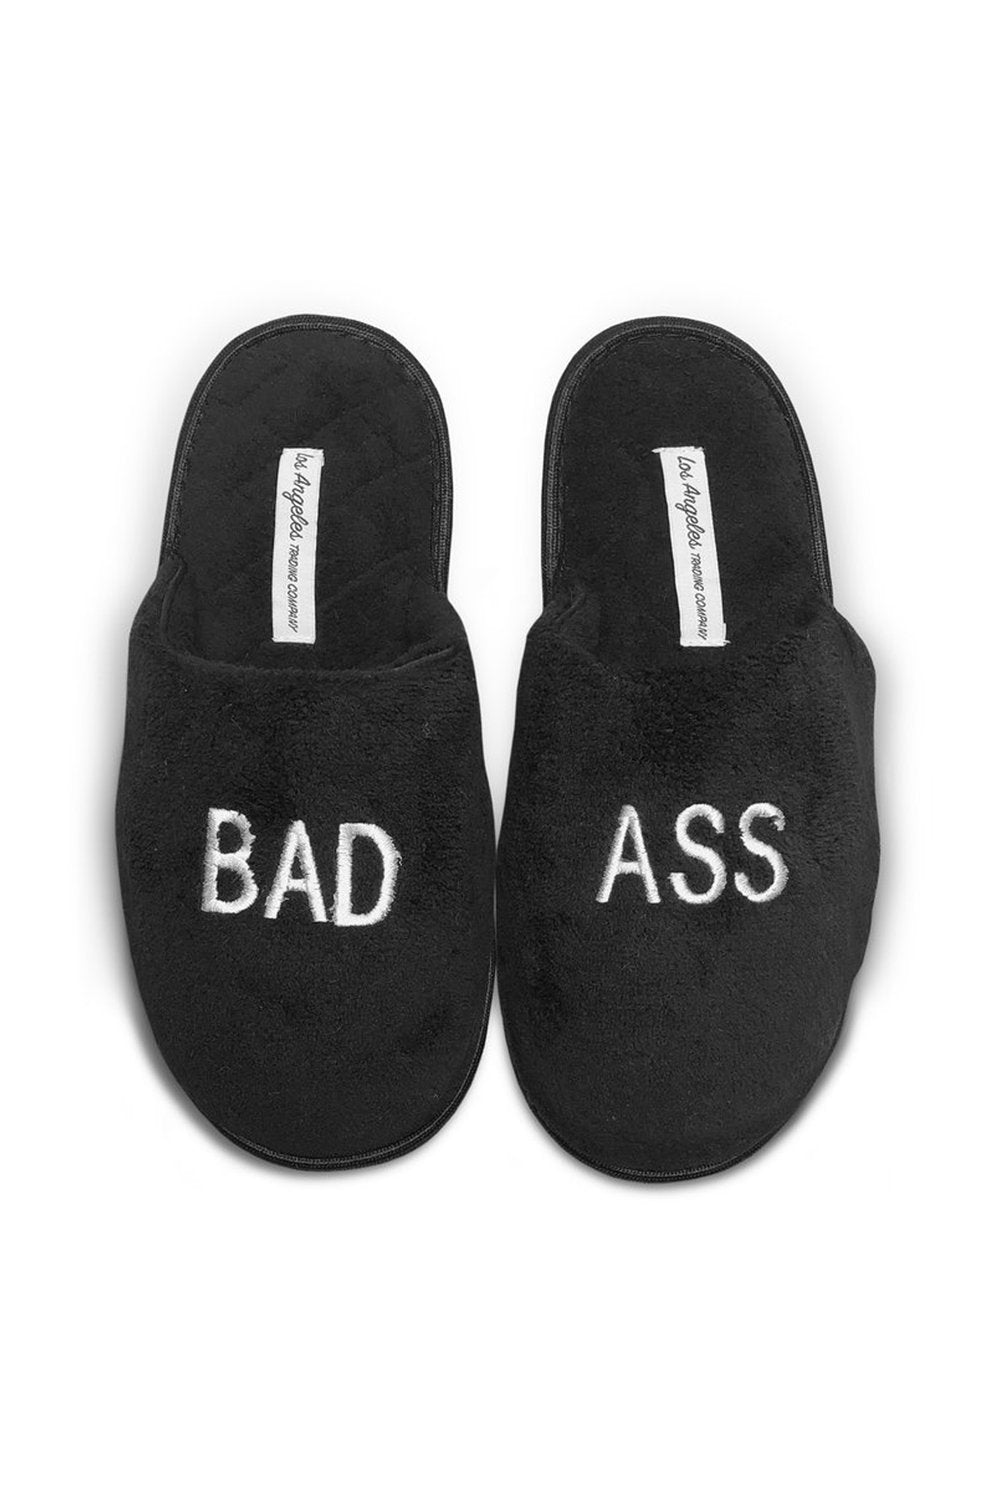 Bad Ass Slippers - Unisex | Black